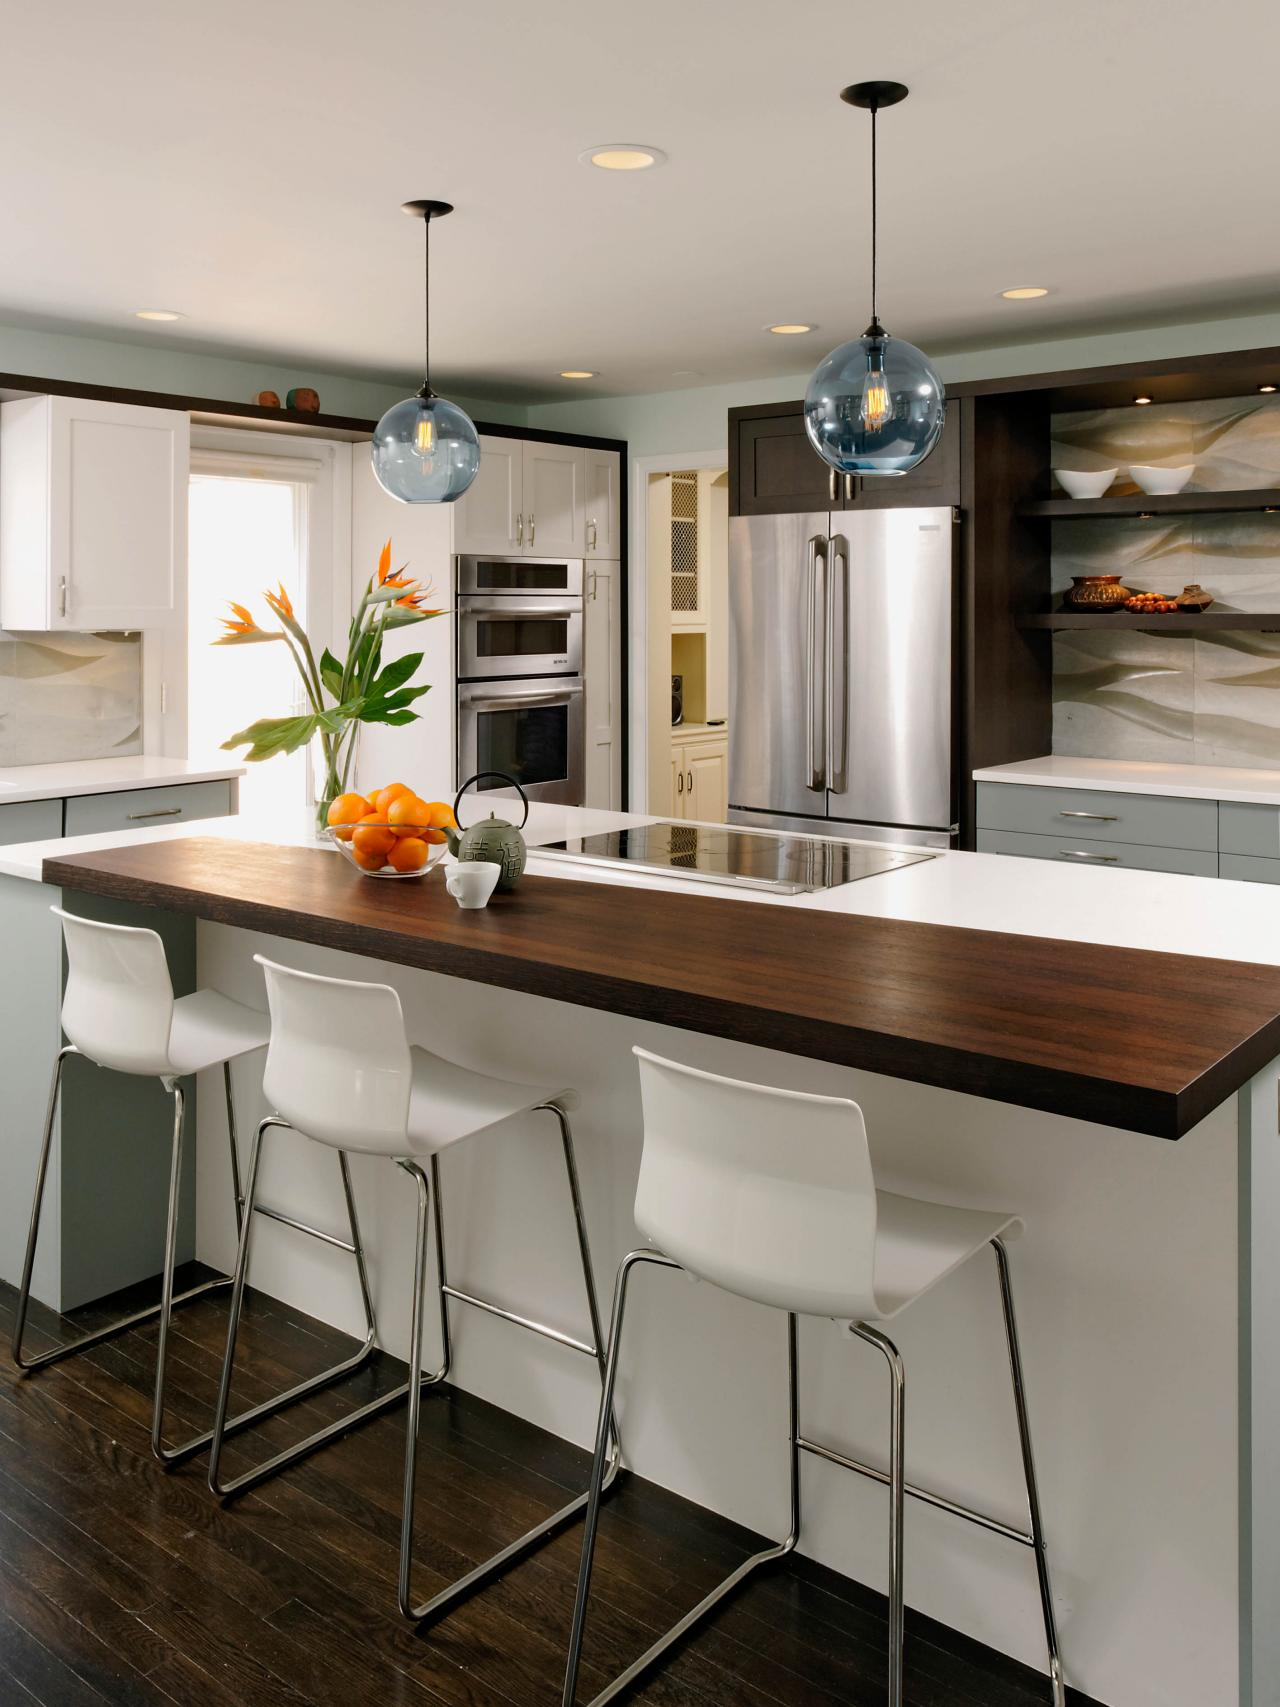 kitchen islands for small kitchens small kitchen island ideas: pictures u0026 tips from hgtv | hgtv pdtccth